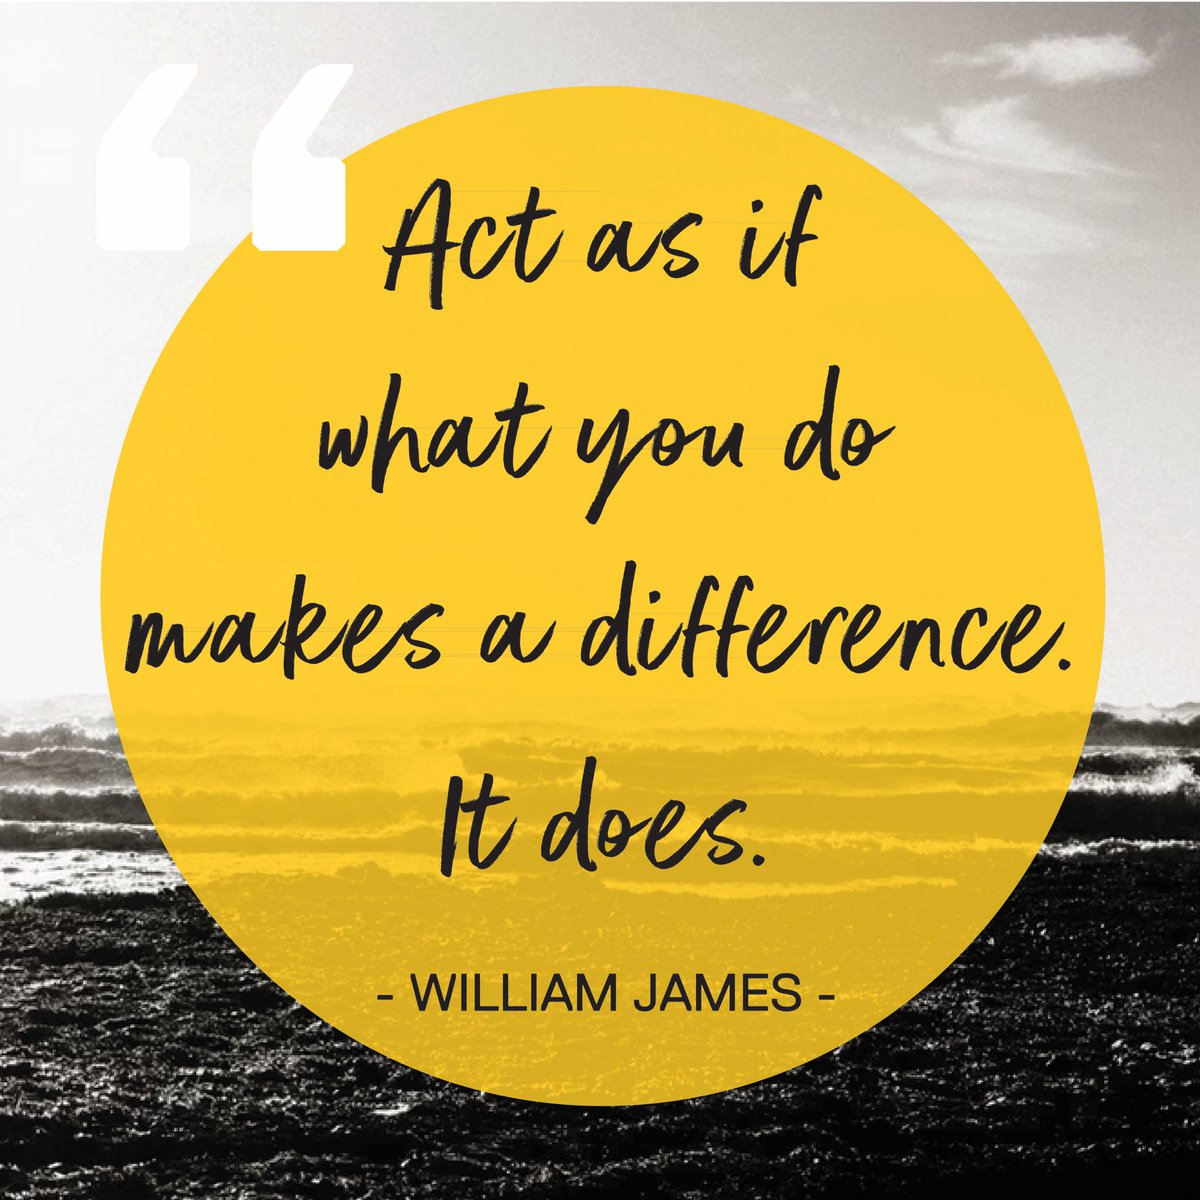 Every little thing makes a difference. #inspiration #inspiring #quote #MakeADifference